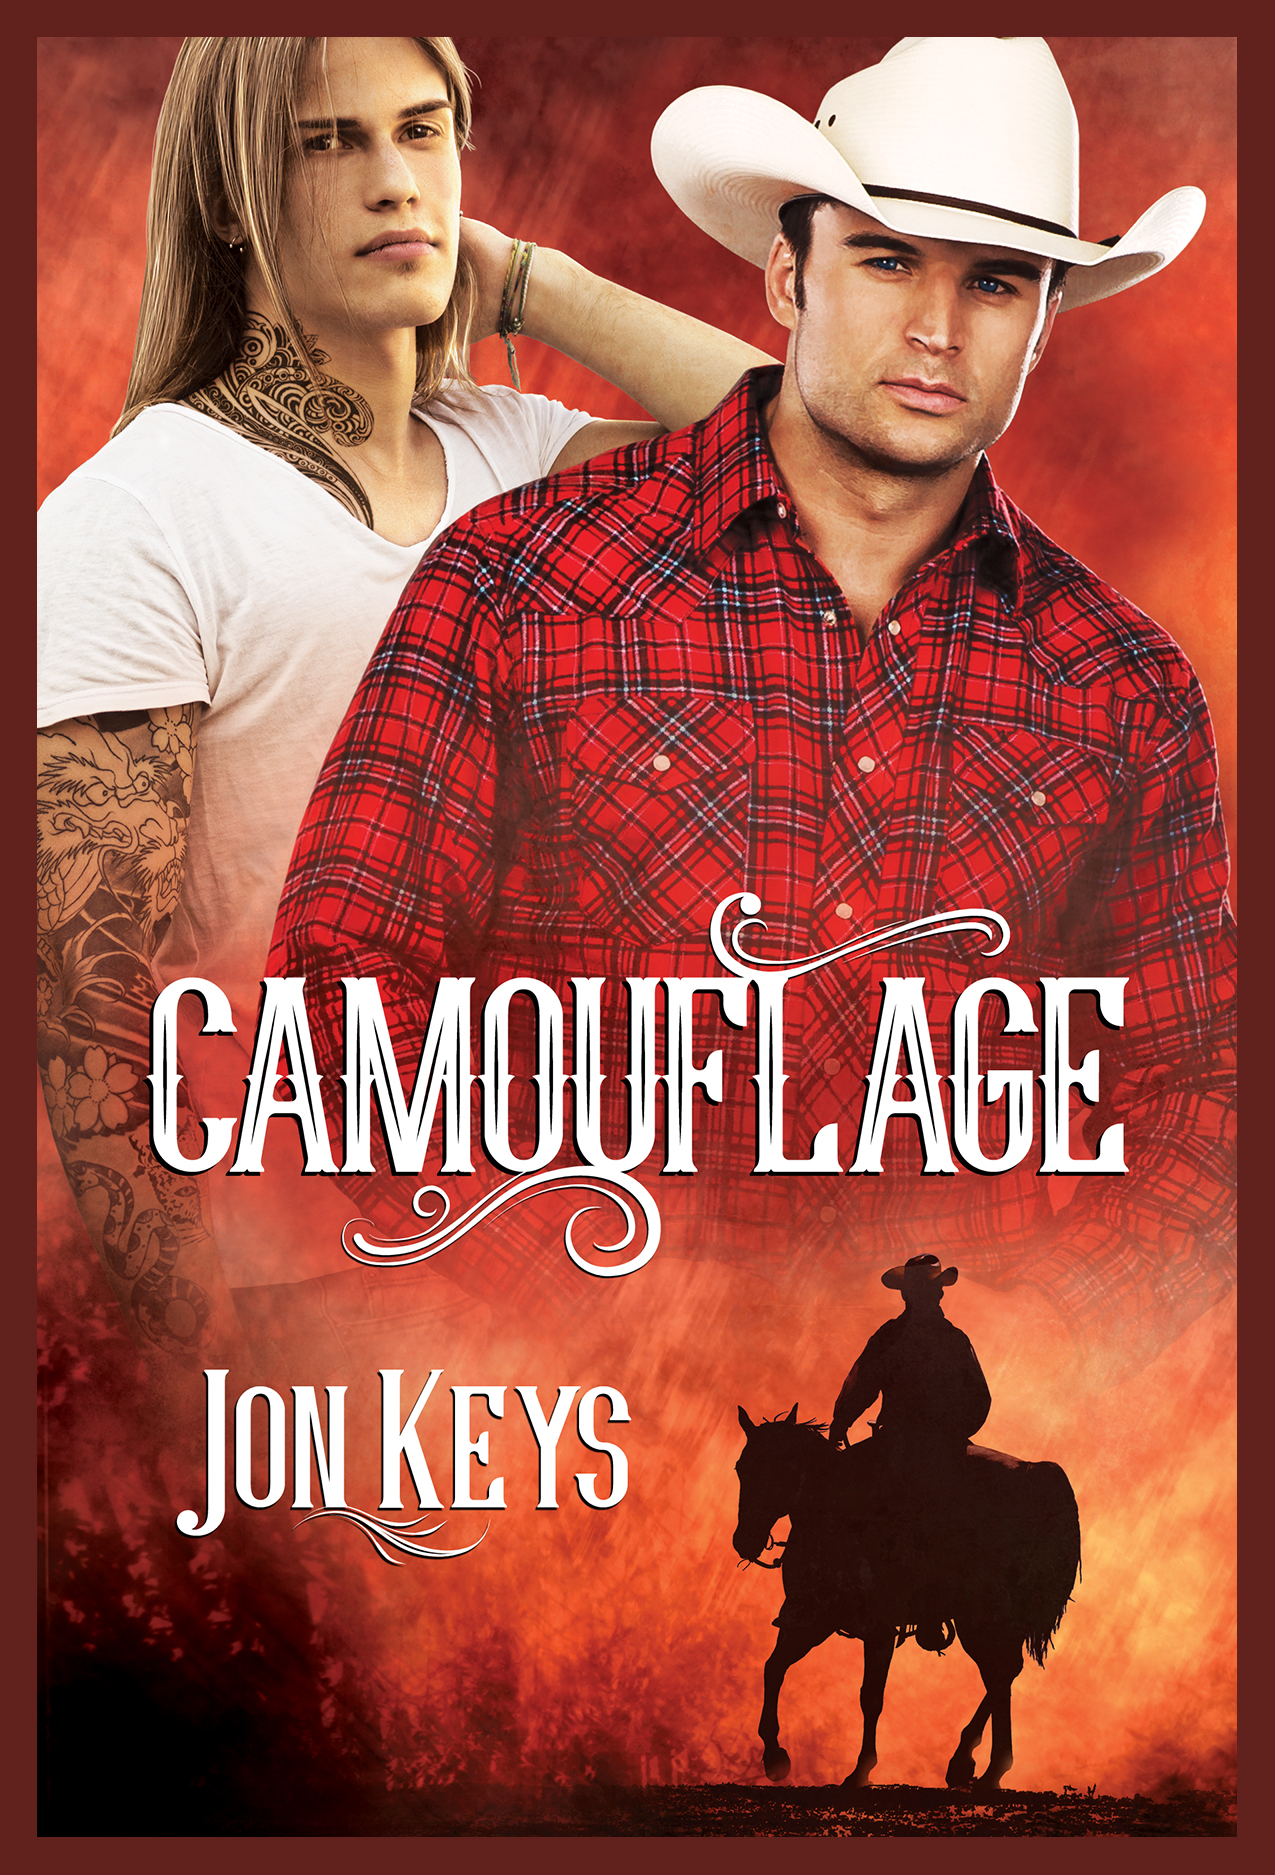 Camouflage by Jon Keys